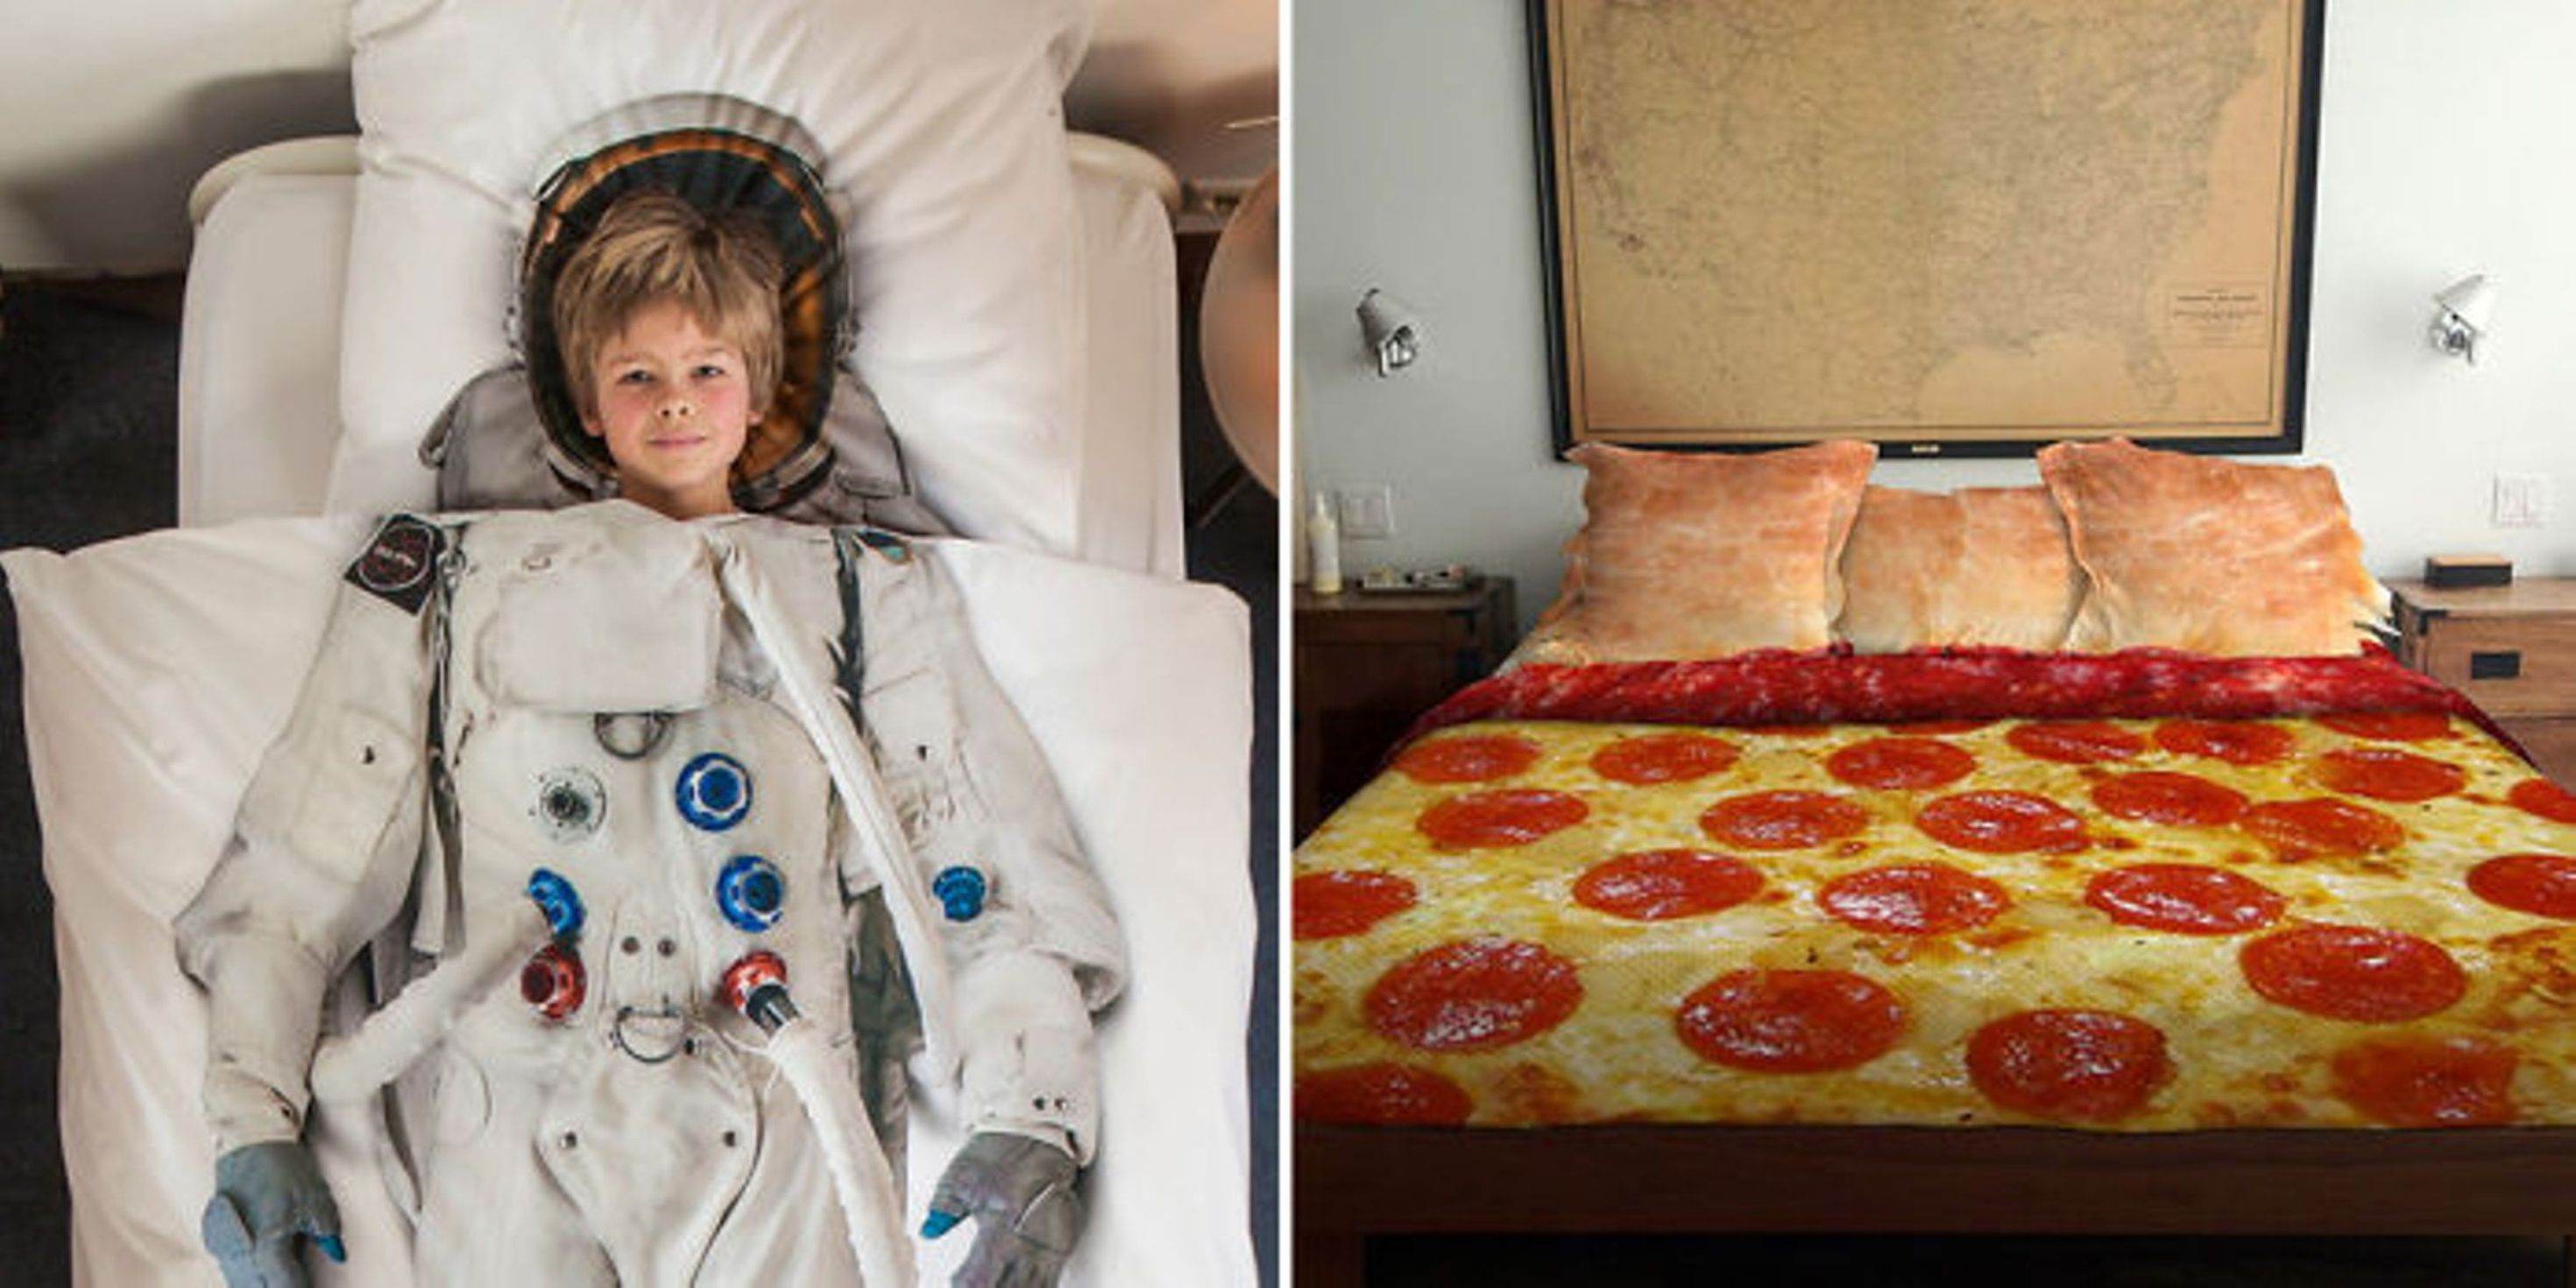 Grappige Dekbedovertrekken 19 Super Cool And Funny Bed Covers 5 Lol